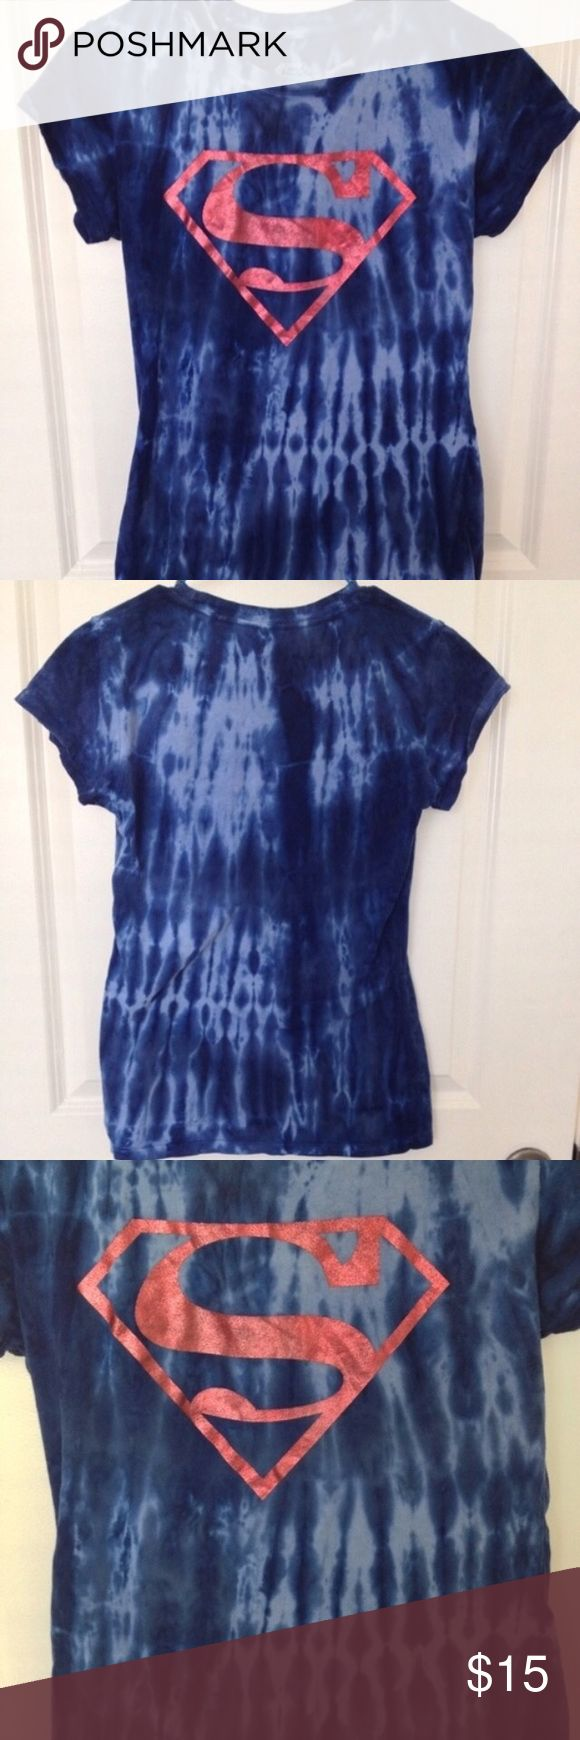 Tie-Dye Superman Shirt I DON'T SWAP/TRADE SO PLEASE DON'T ASK Size L 100% cotton  Very stretchy  Never worn No damages Tops Tees - Short Sleeve